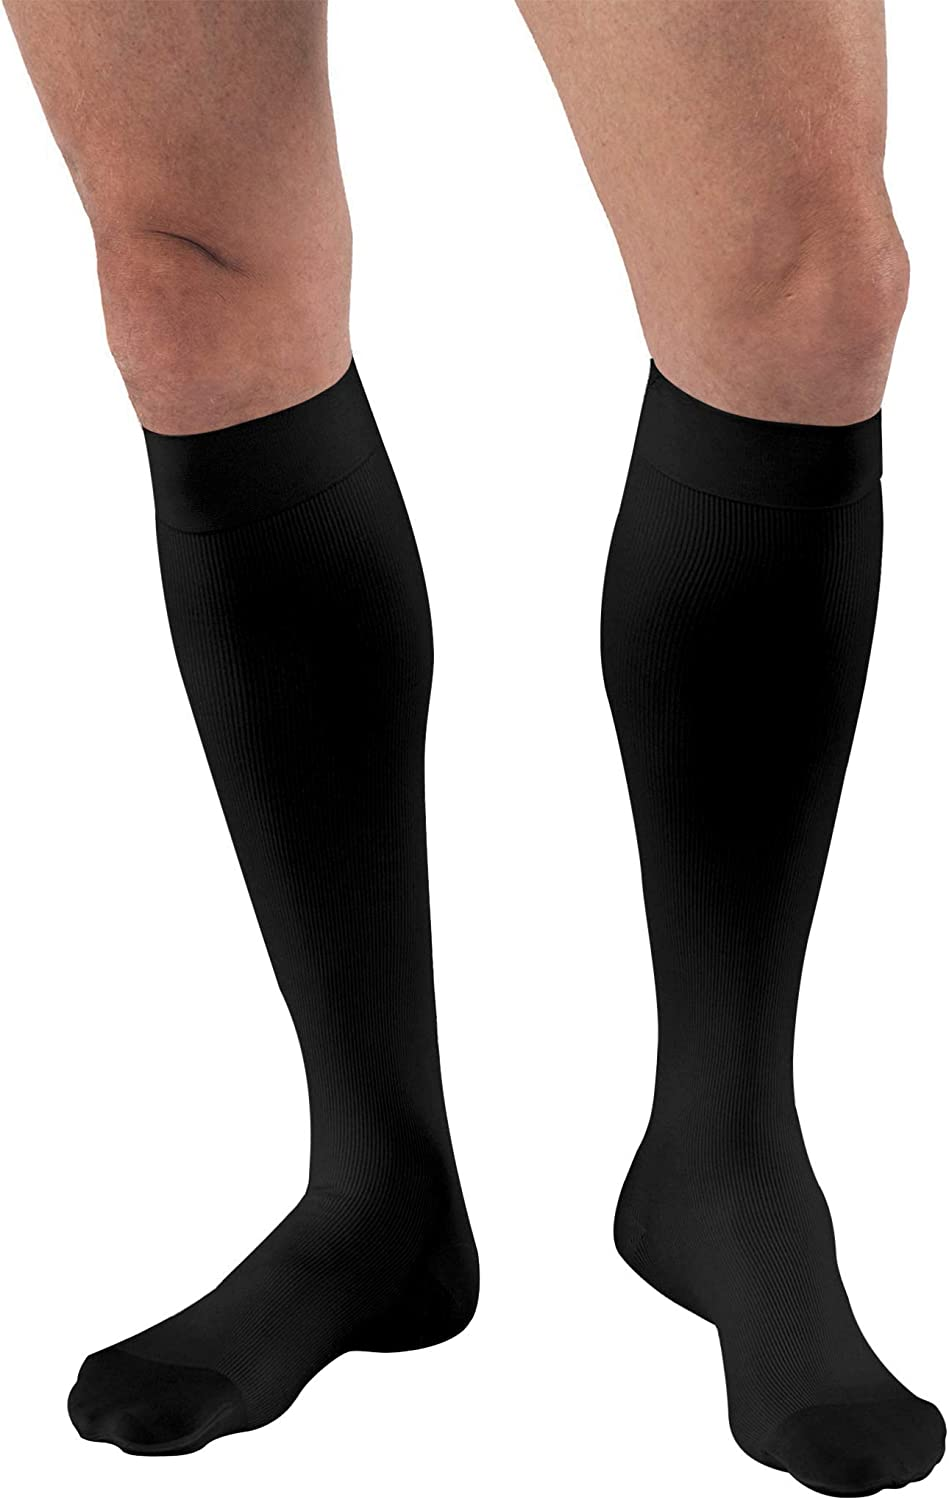 B003XA3P7Y JOBST for Men Knee High Closed Toe Compression Stockings, Extra Firm Legware for All Day Comfort for Males, Compression Class- 20-30 71%2BJOQgFieL